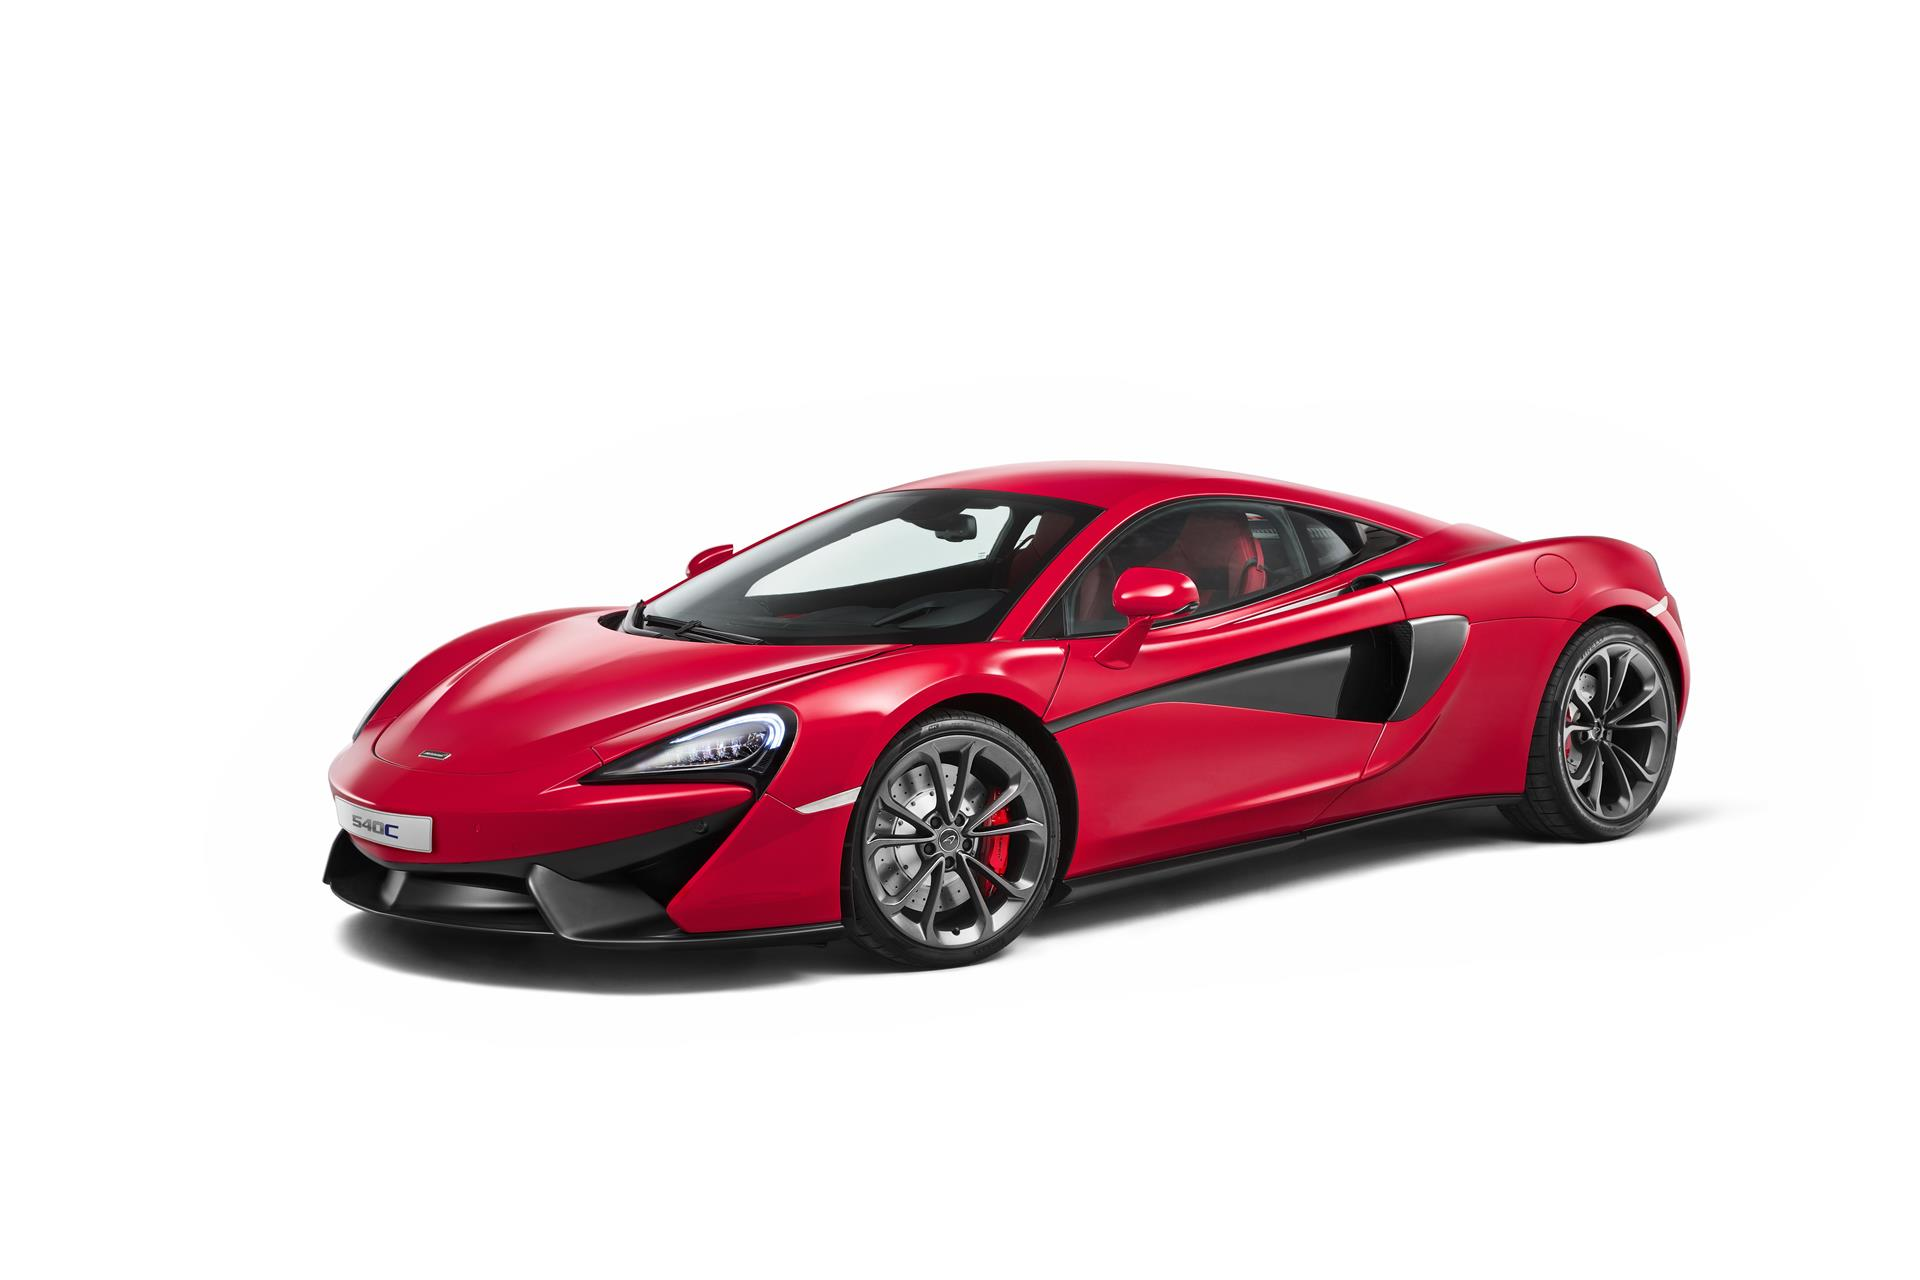 2015 mclaren 540c coupe wallpaper hd 47472